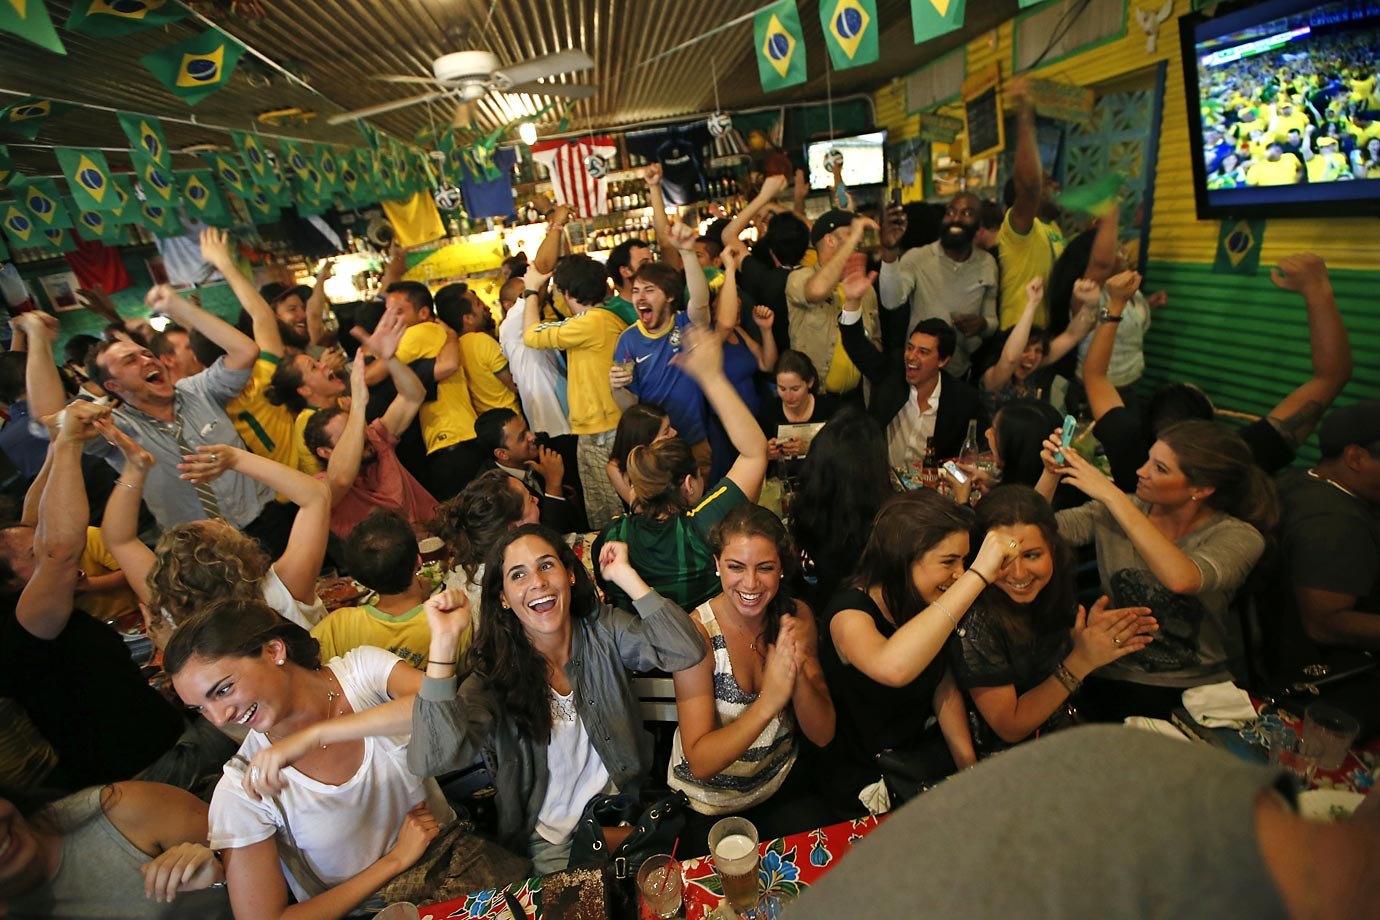 Brazil fans at a bar in the Williamsburg, N.Y.